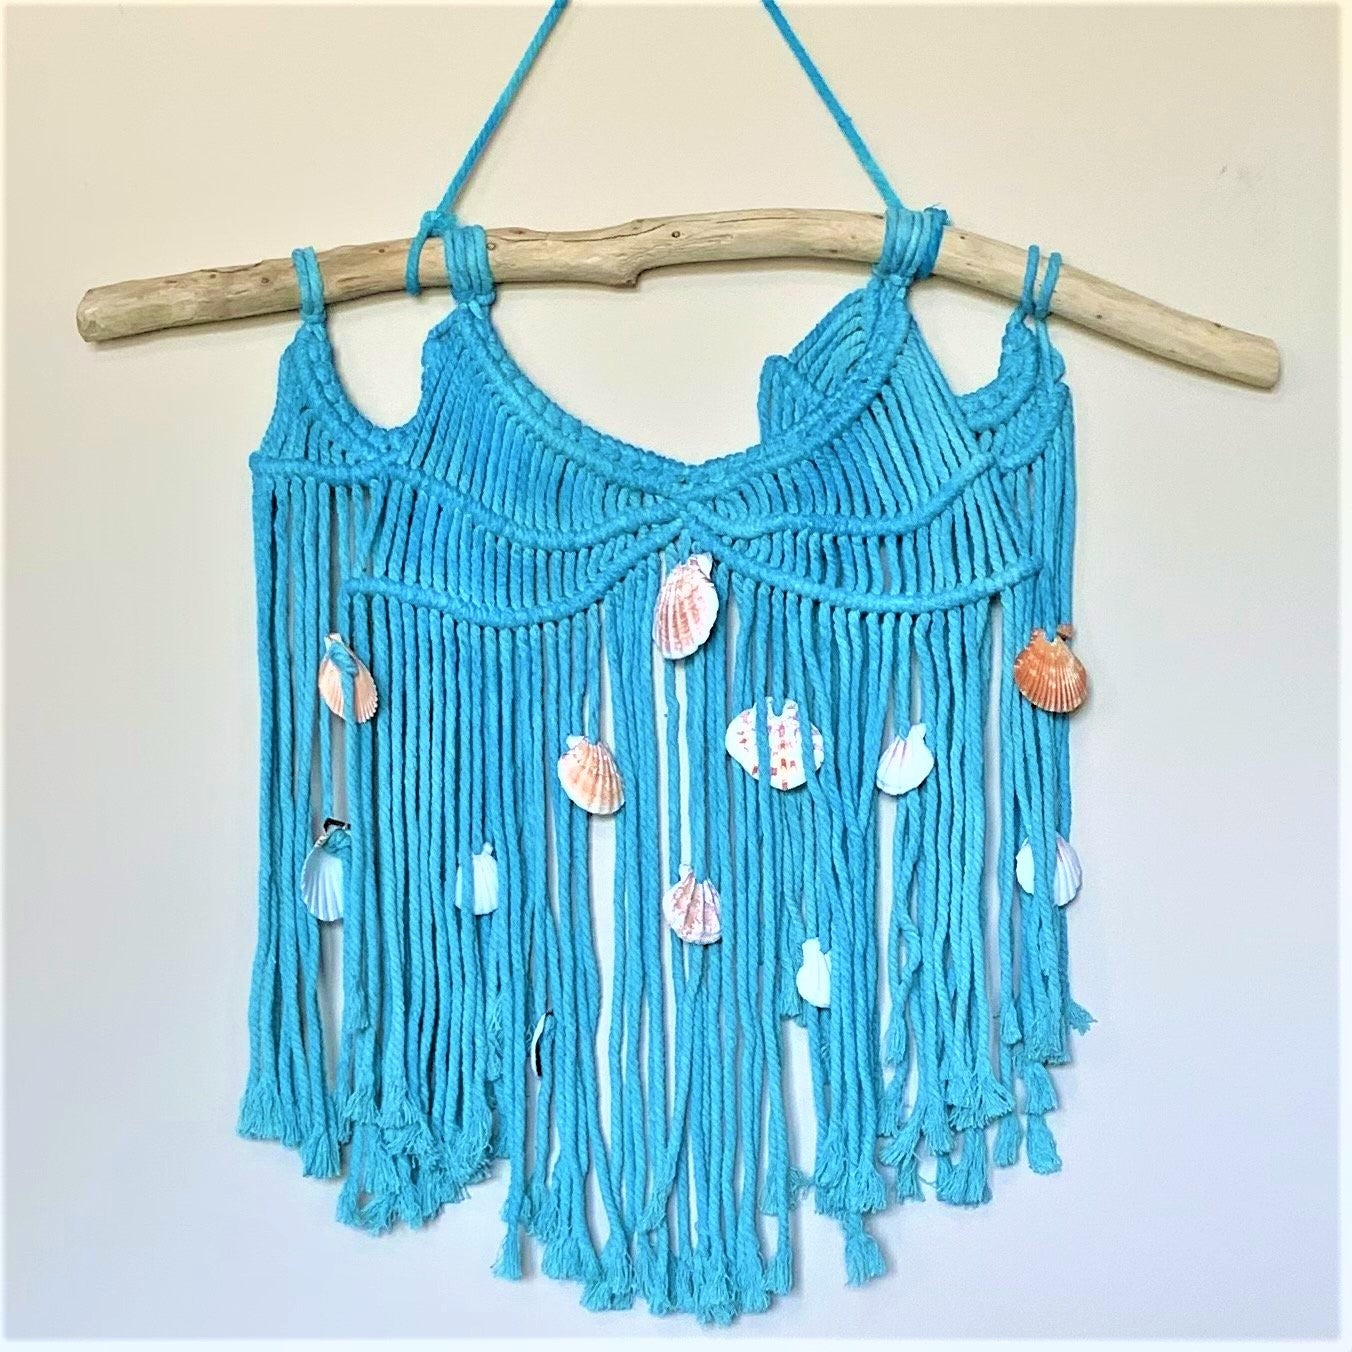 24-Inch Tie Dyed Turquoise Macramé Wall Hanging on Driftwood